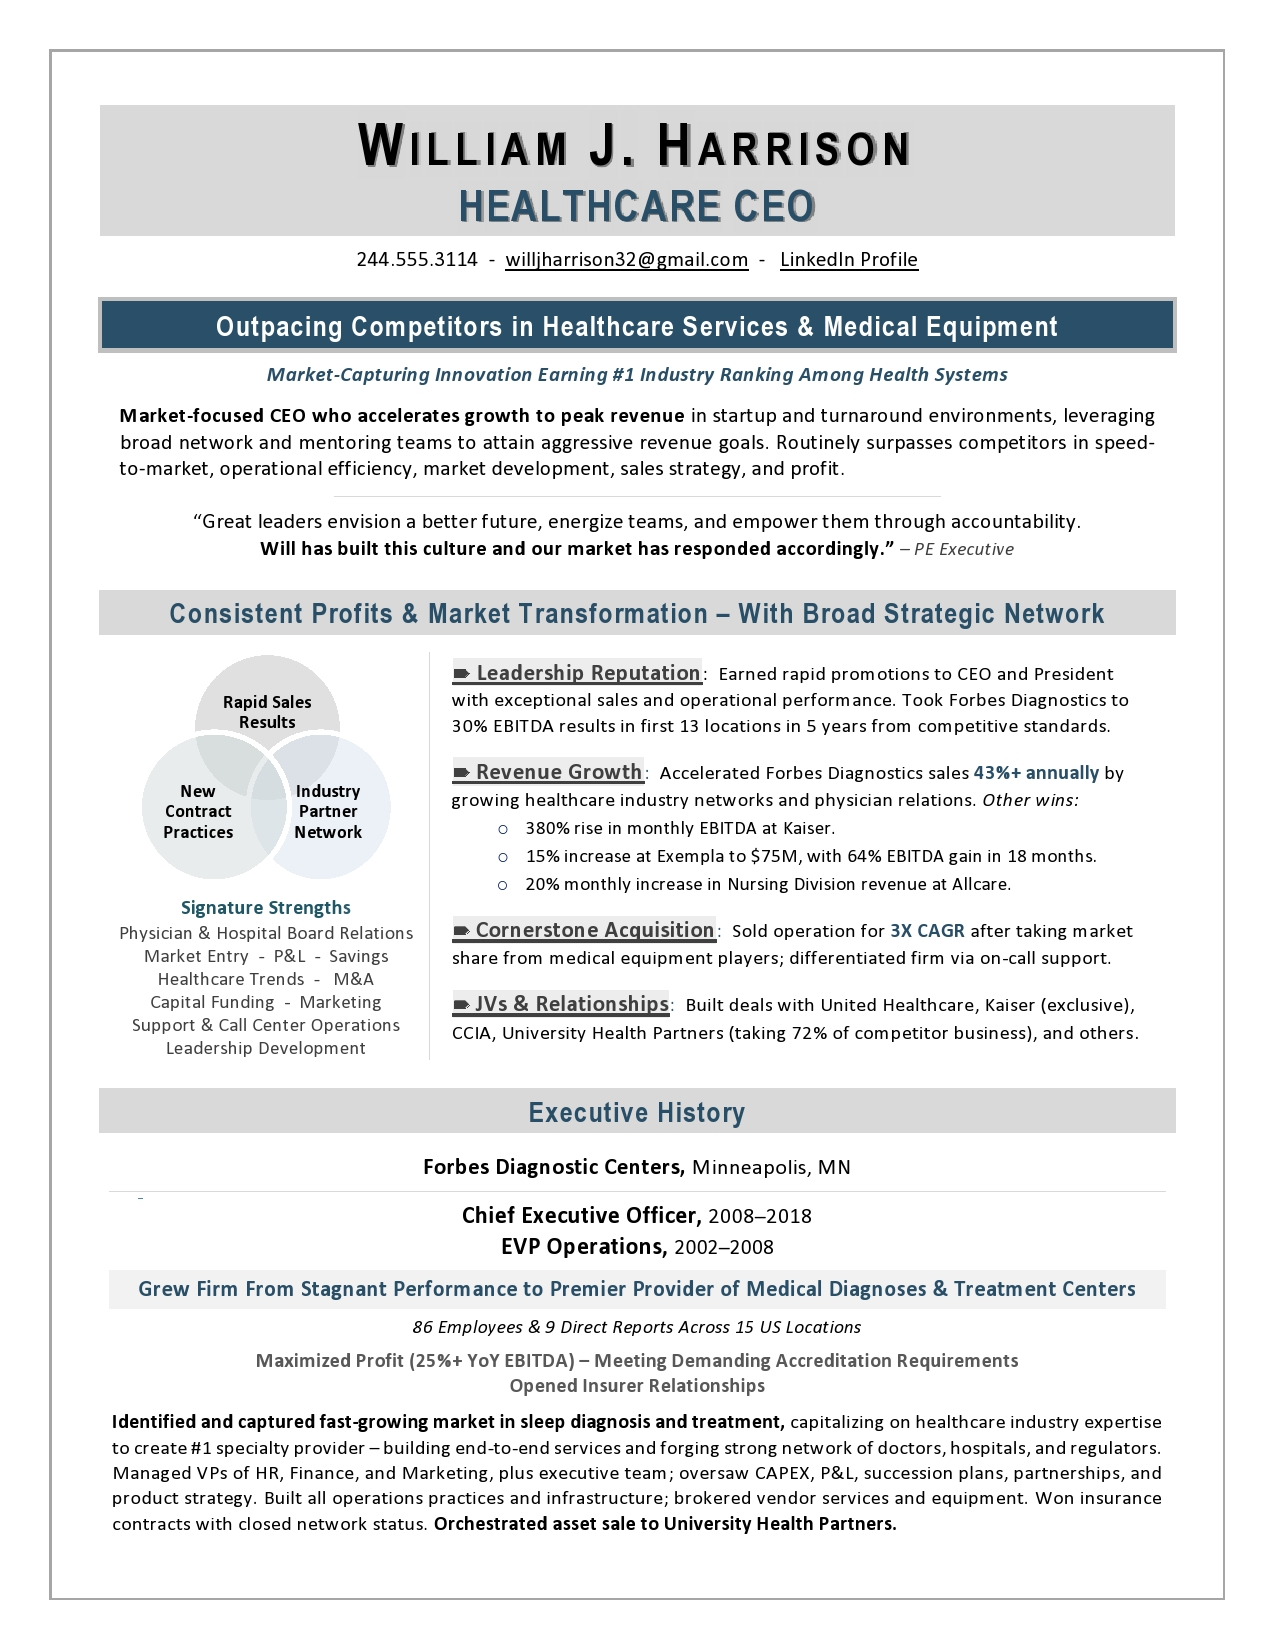 Ceo healthcare resume free resume writing lessons